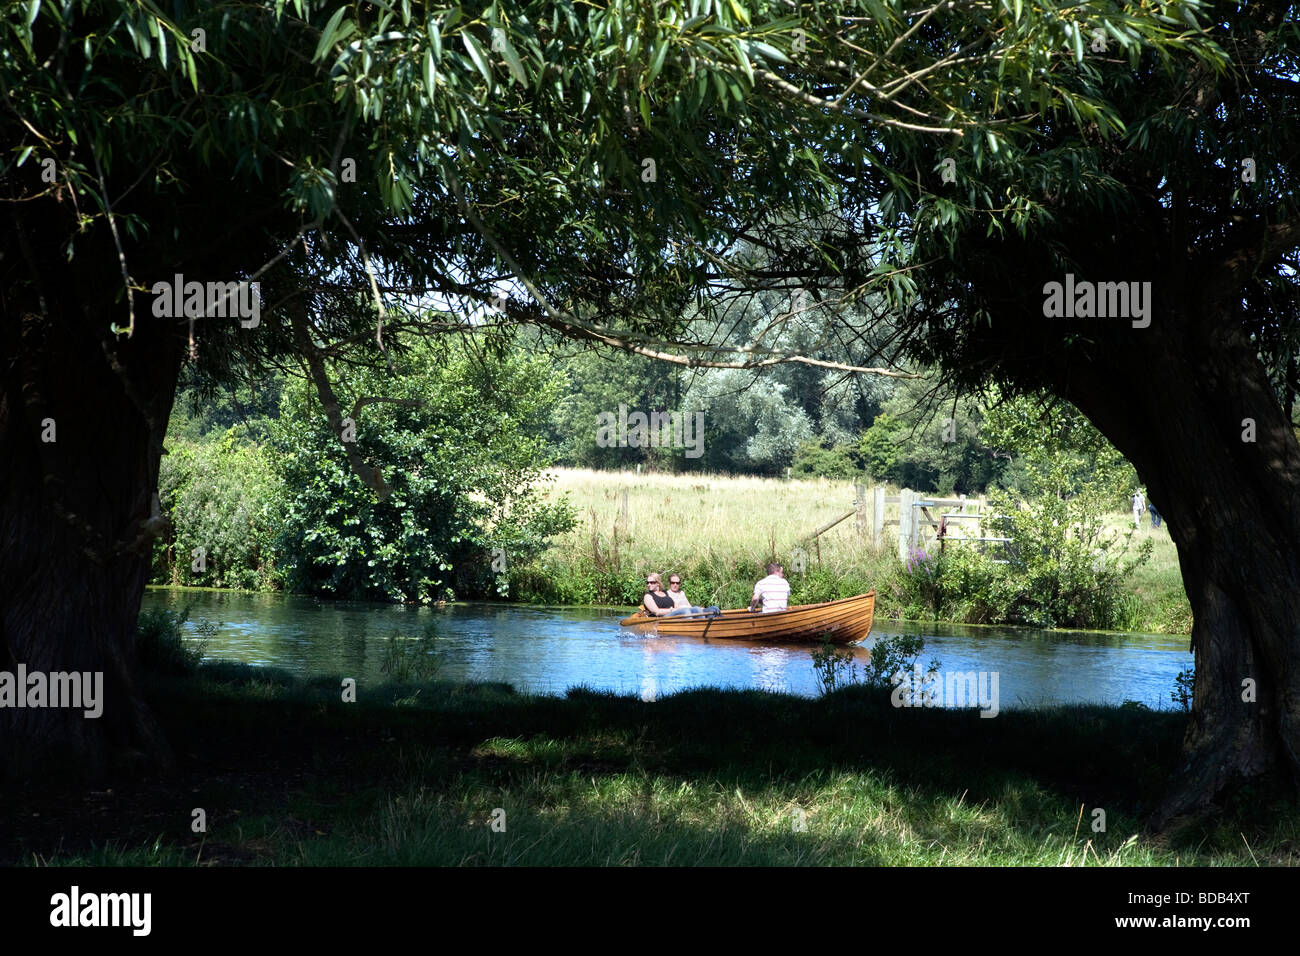 people Boating on the river Stour framed by trees Between The historic village of Dedham and Flatford in Constable Stock Photo